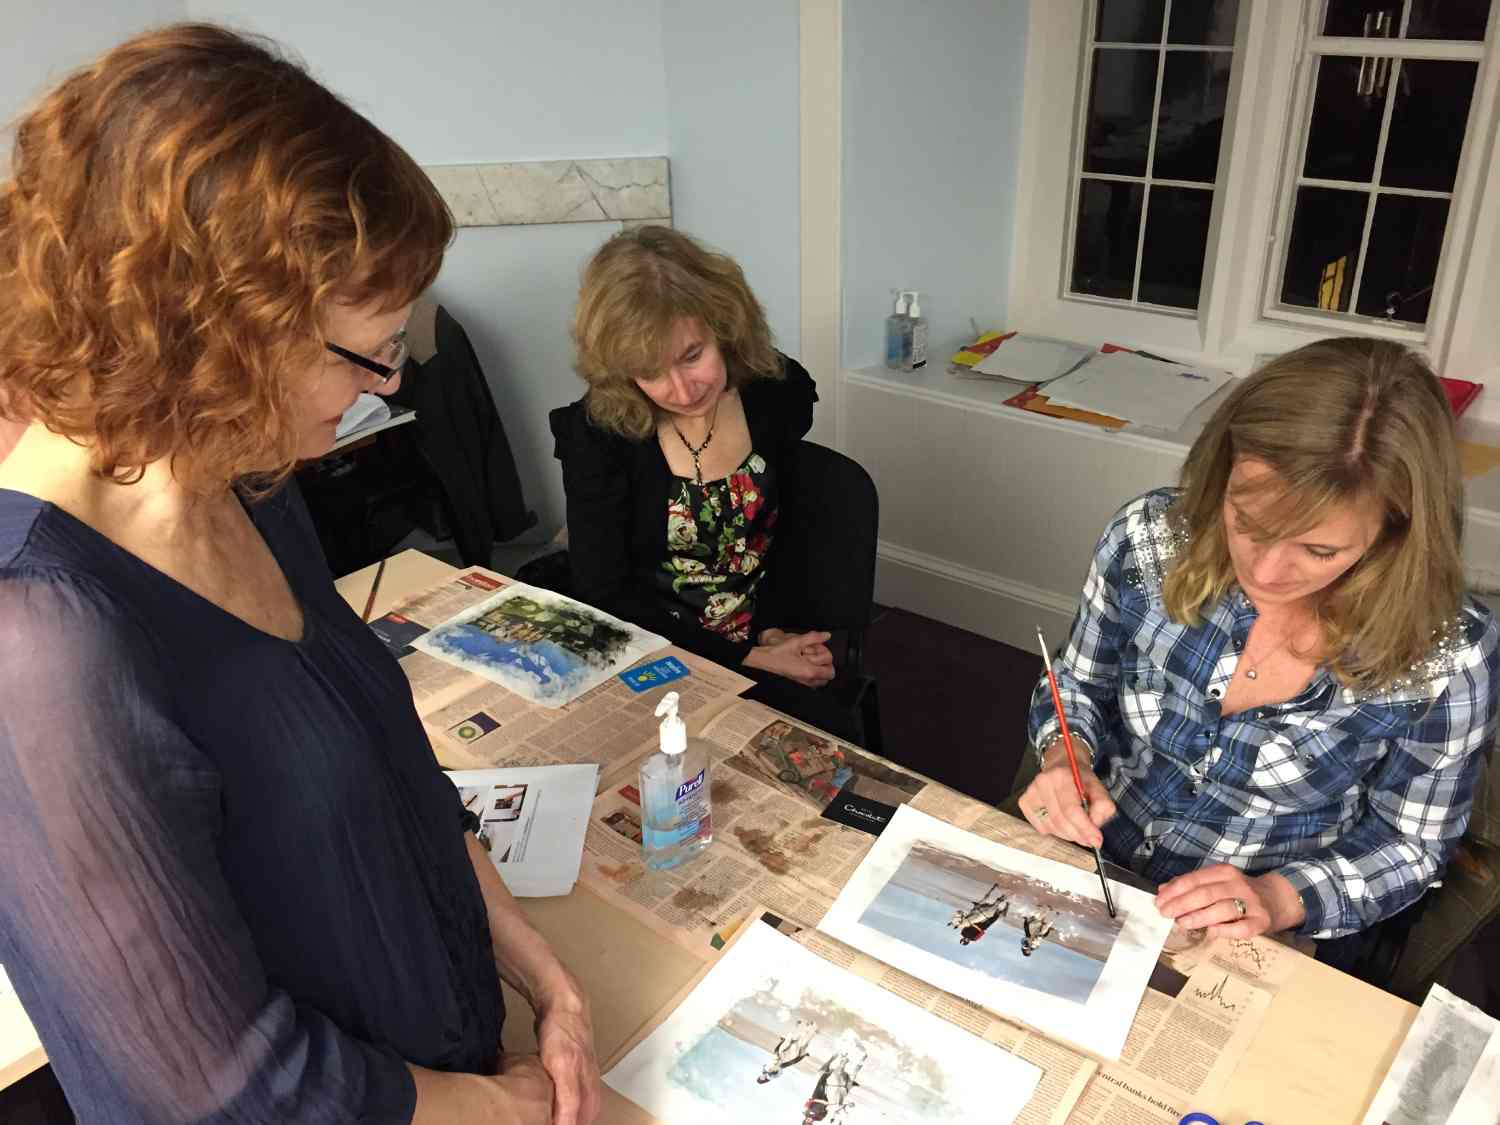 Bookmaking class taught by Susan kae Grant